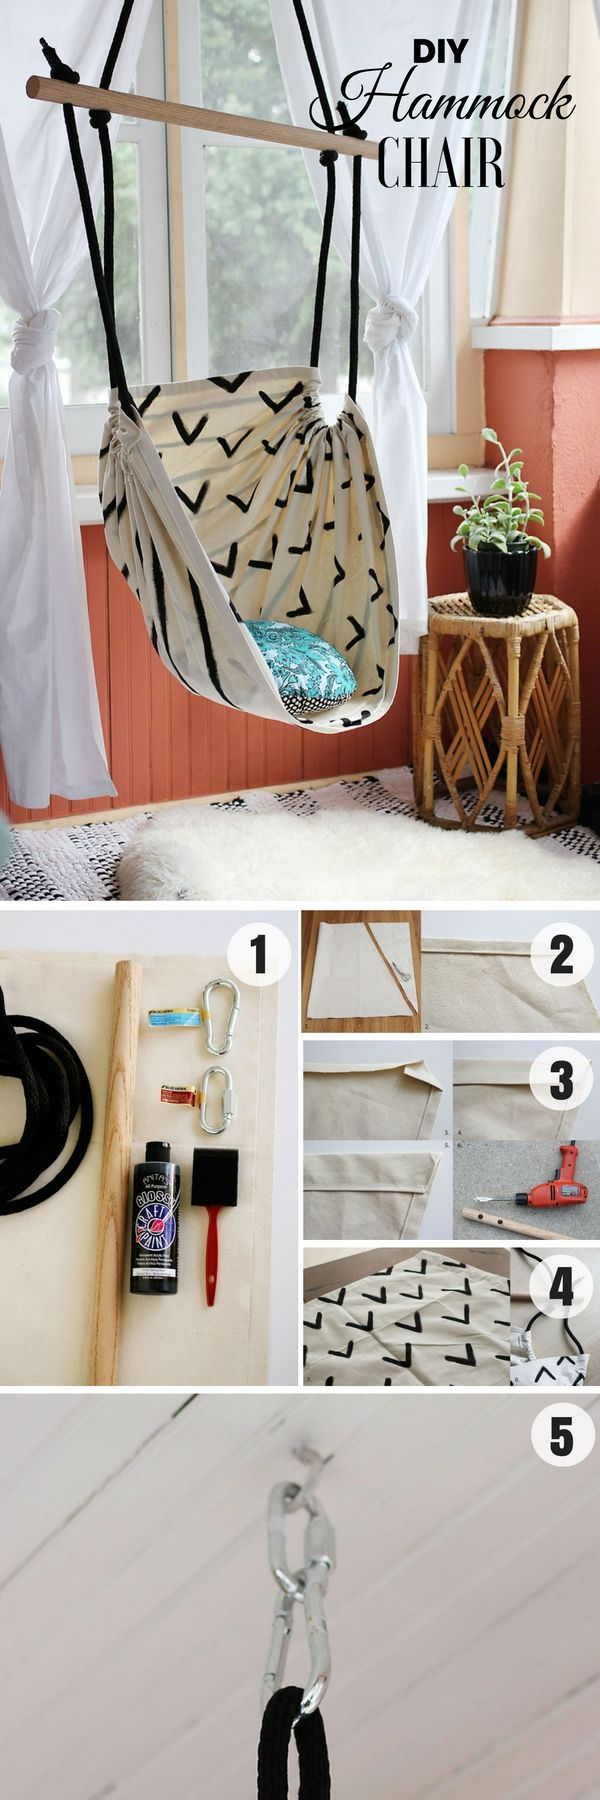 best 25+ hammock chair ideas on pinterest | indoor hammock chair